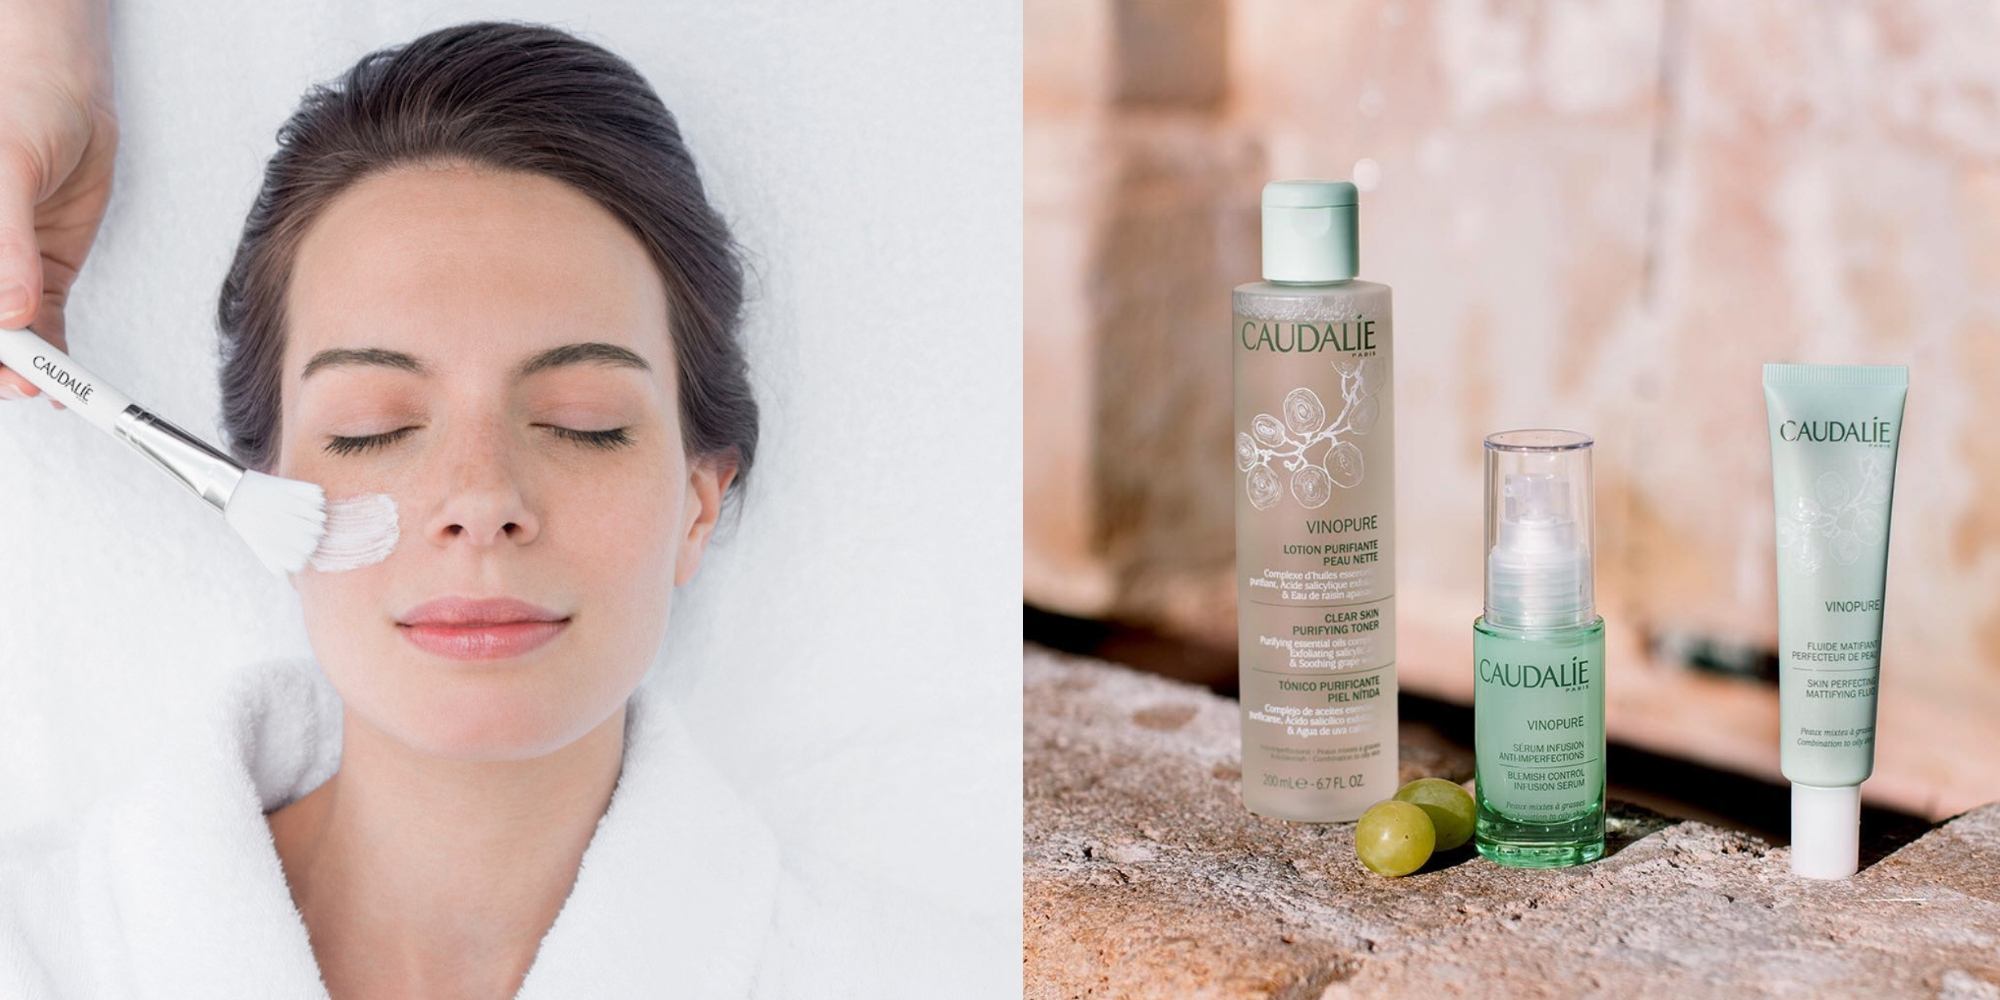 Win a Free Facial and $300 in Beauty Goodies From Caudalie!